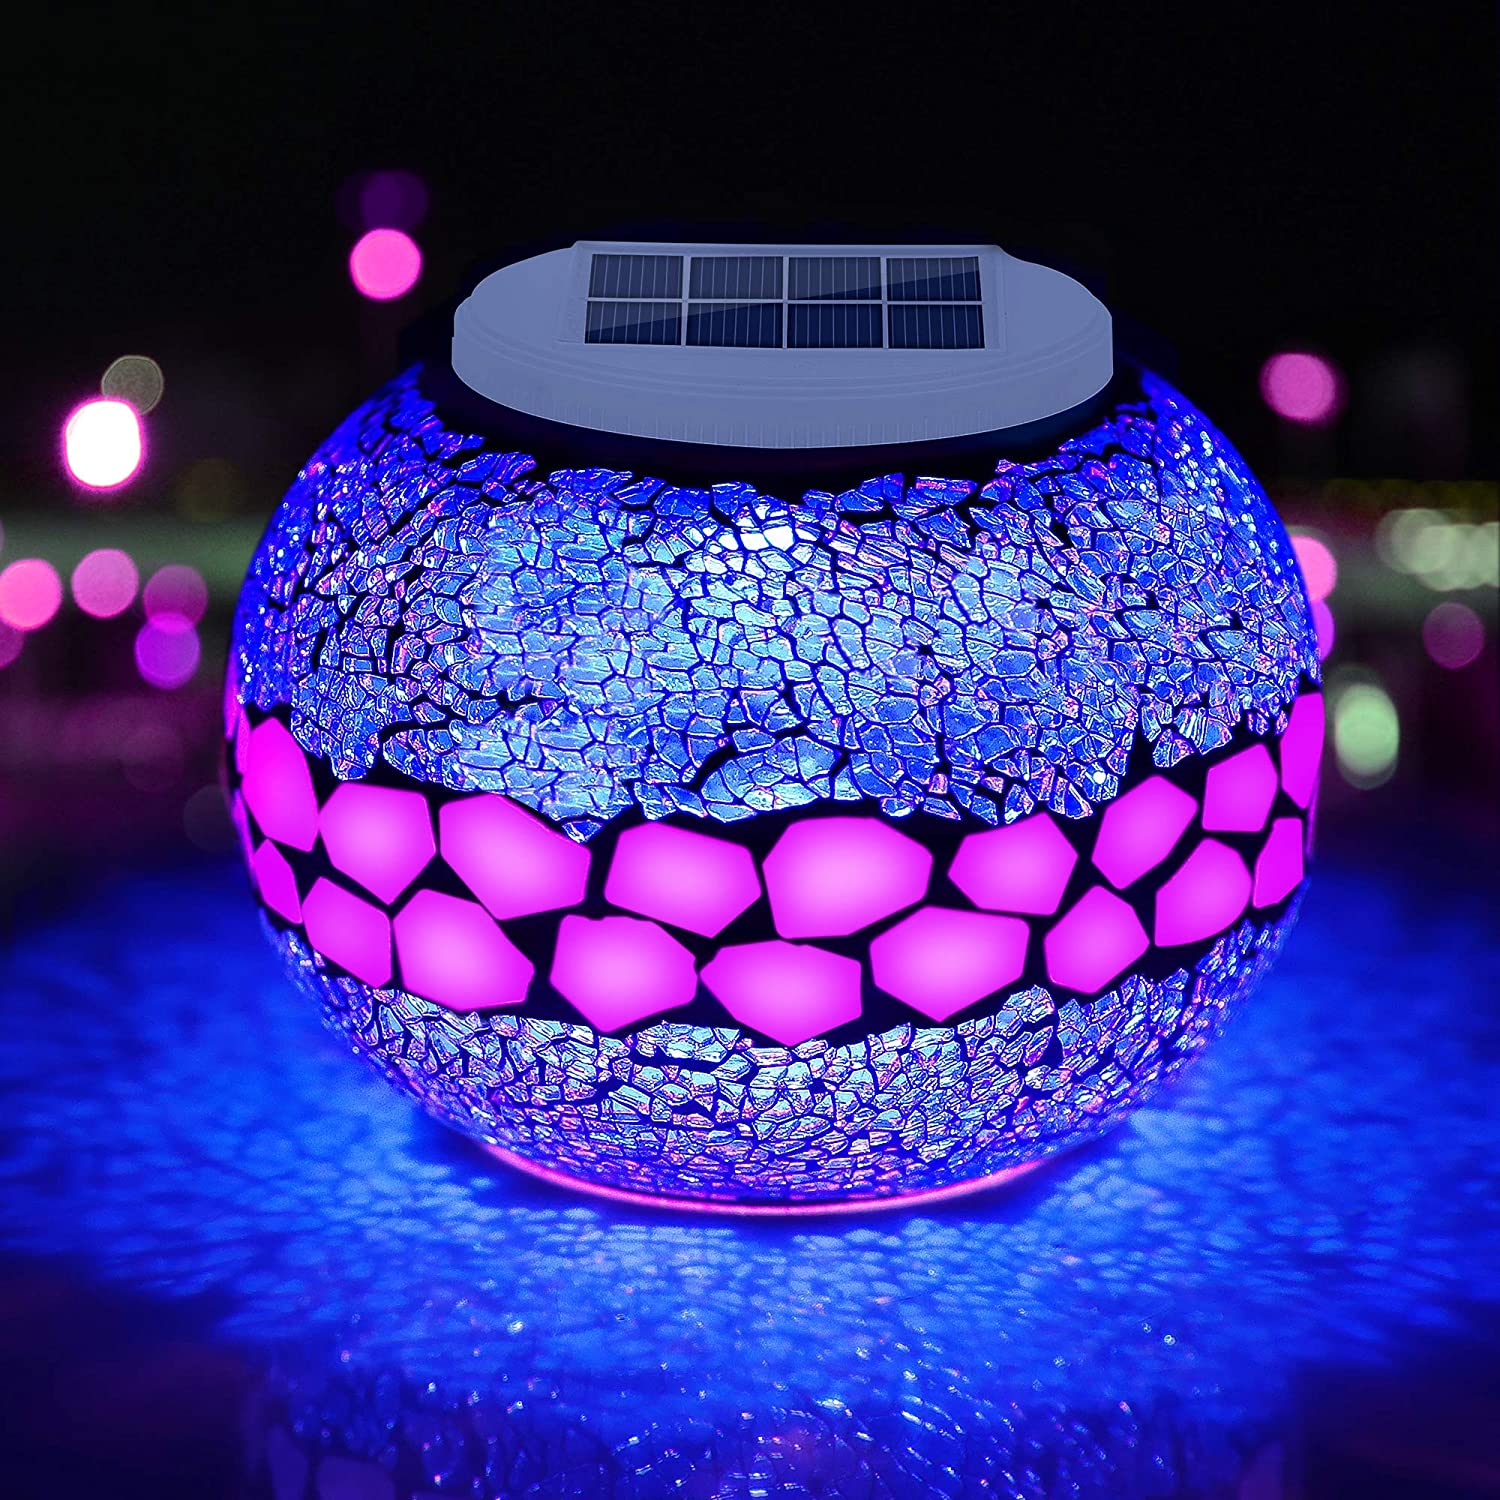 Pandawill Mosaic Solar Glass Garden Decoration Light, Rechargeable Color-Changing Solar Table Lamp, Waterproof LED Night Light for Garden, Party, Bedroom, Patio, Indoor/Outdoor Decoration